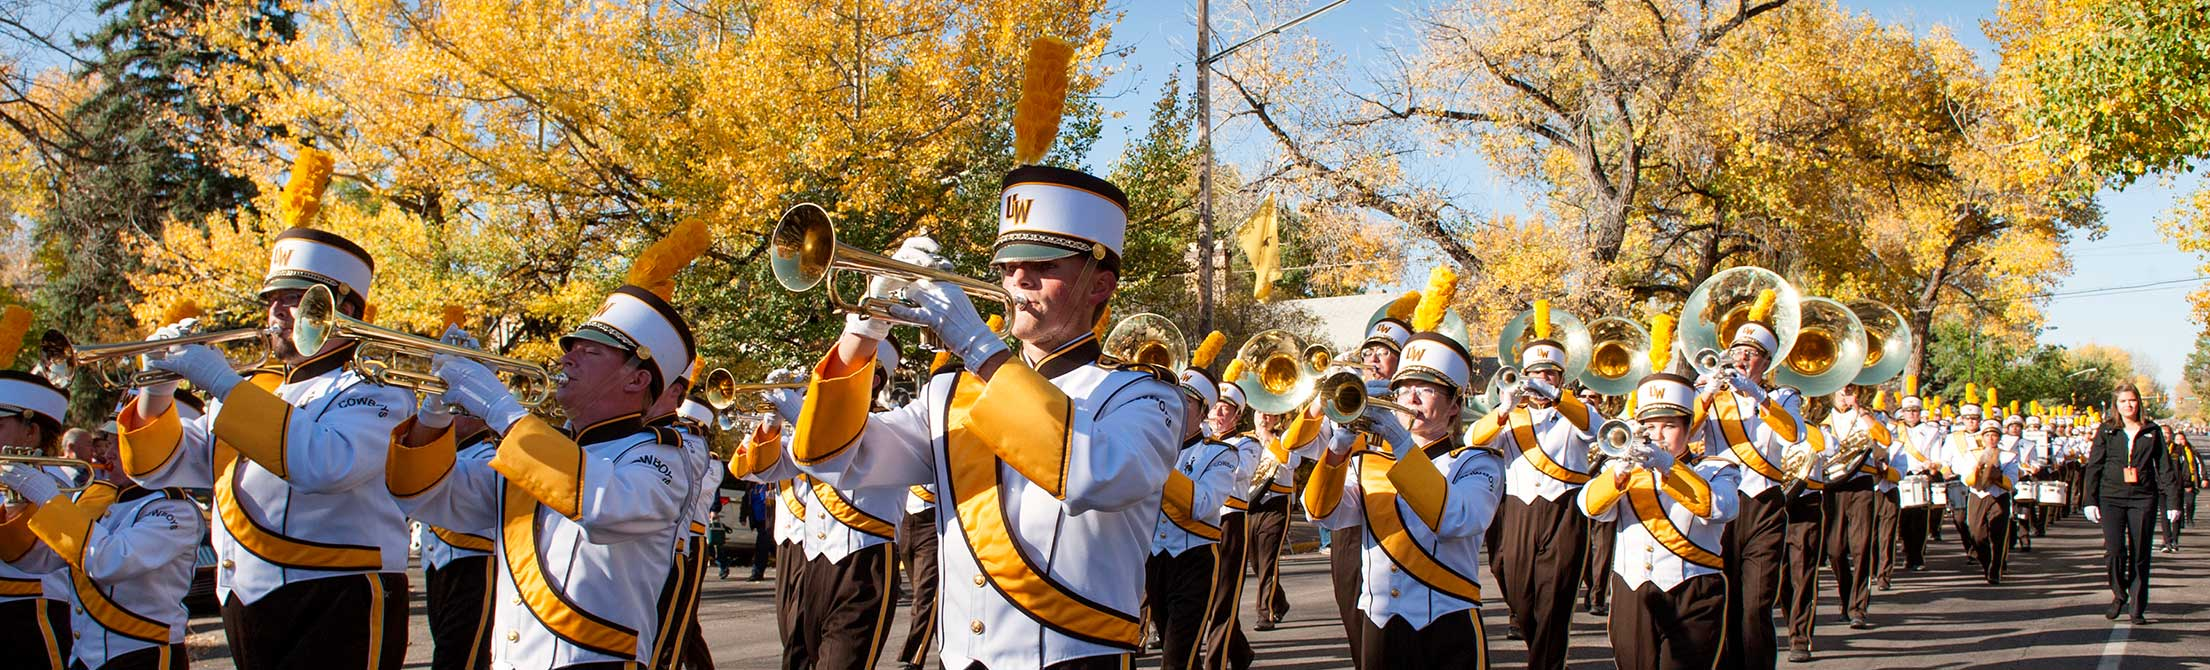 UW Marching band marching during a parade.